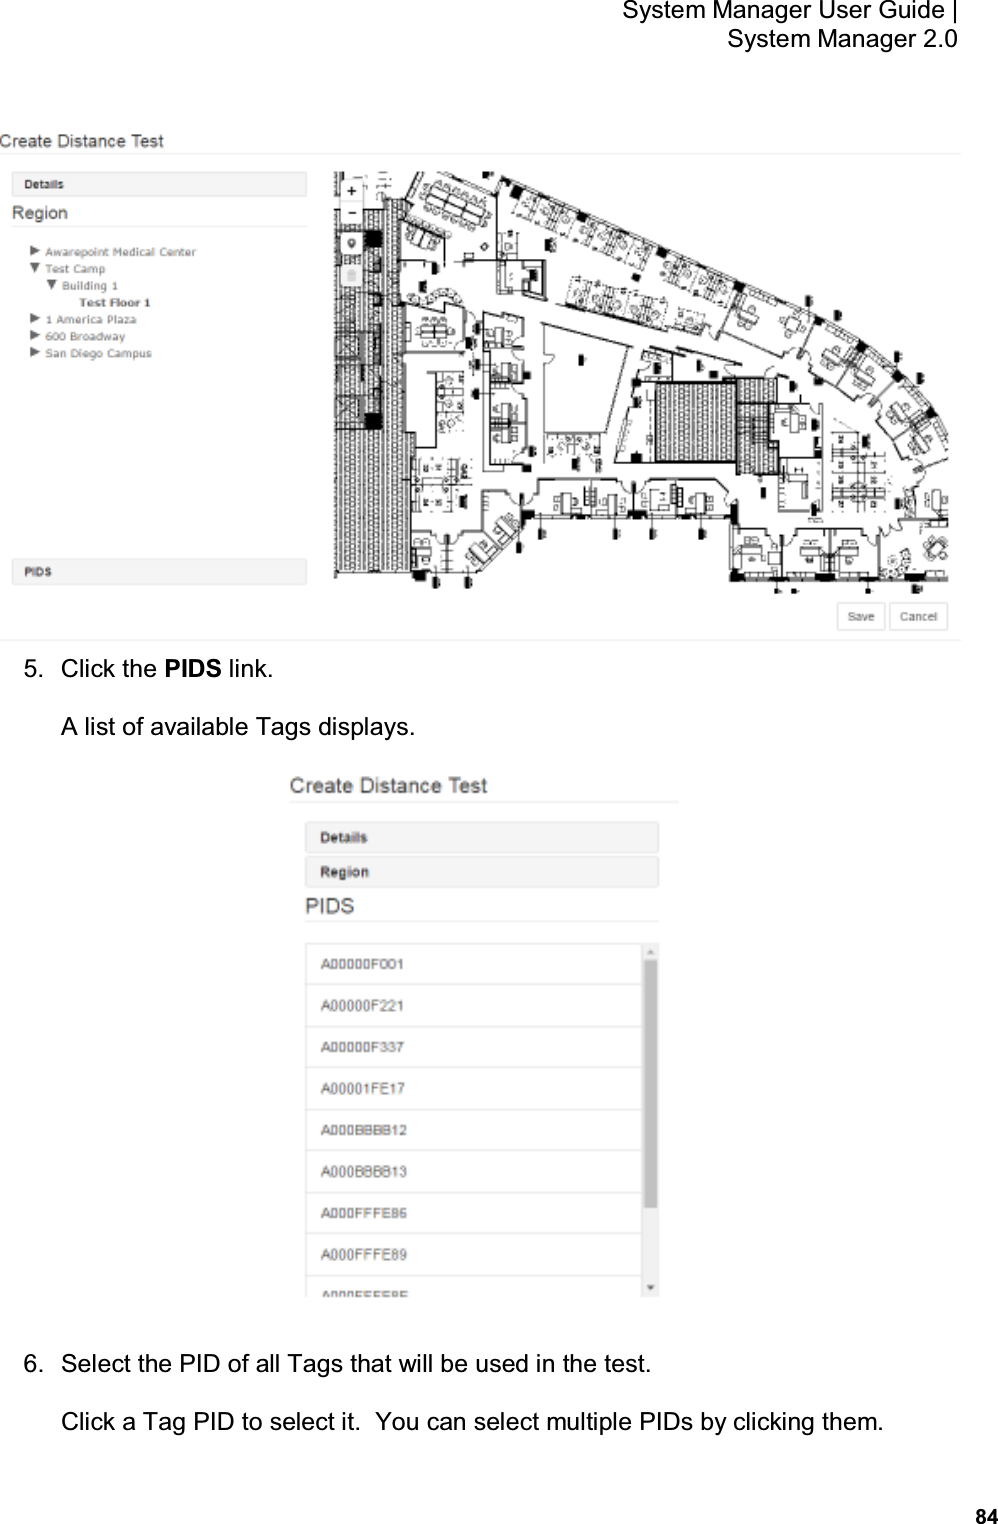 84 System Manager User Guide    System Manager 2.0  5.  Click the PIDS link. A list of available Tags displays.  6.  Select the PID of all Tags that will be used in the test. Click a Tag PID to select it.  You can select multiple PIDs by clicking them.